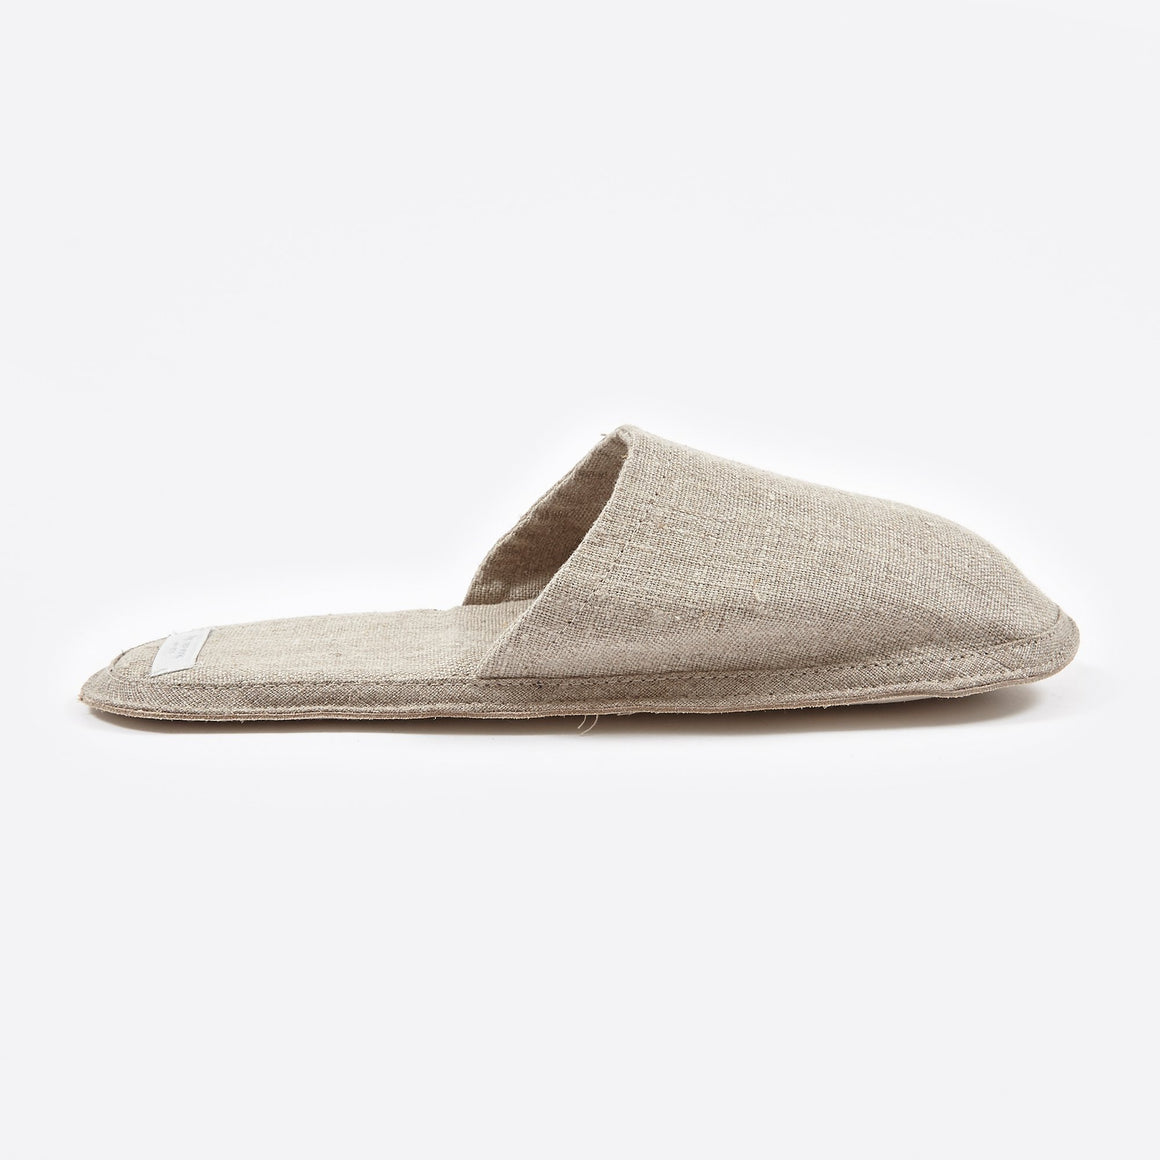 Natural Linen Slippers, Slippers - Grace Gordon